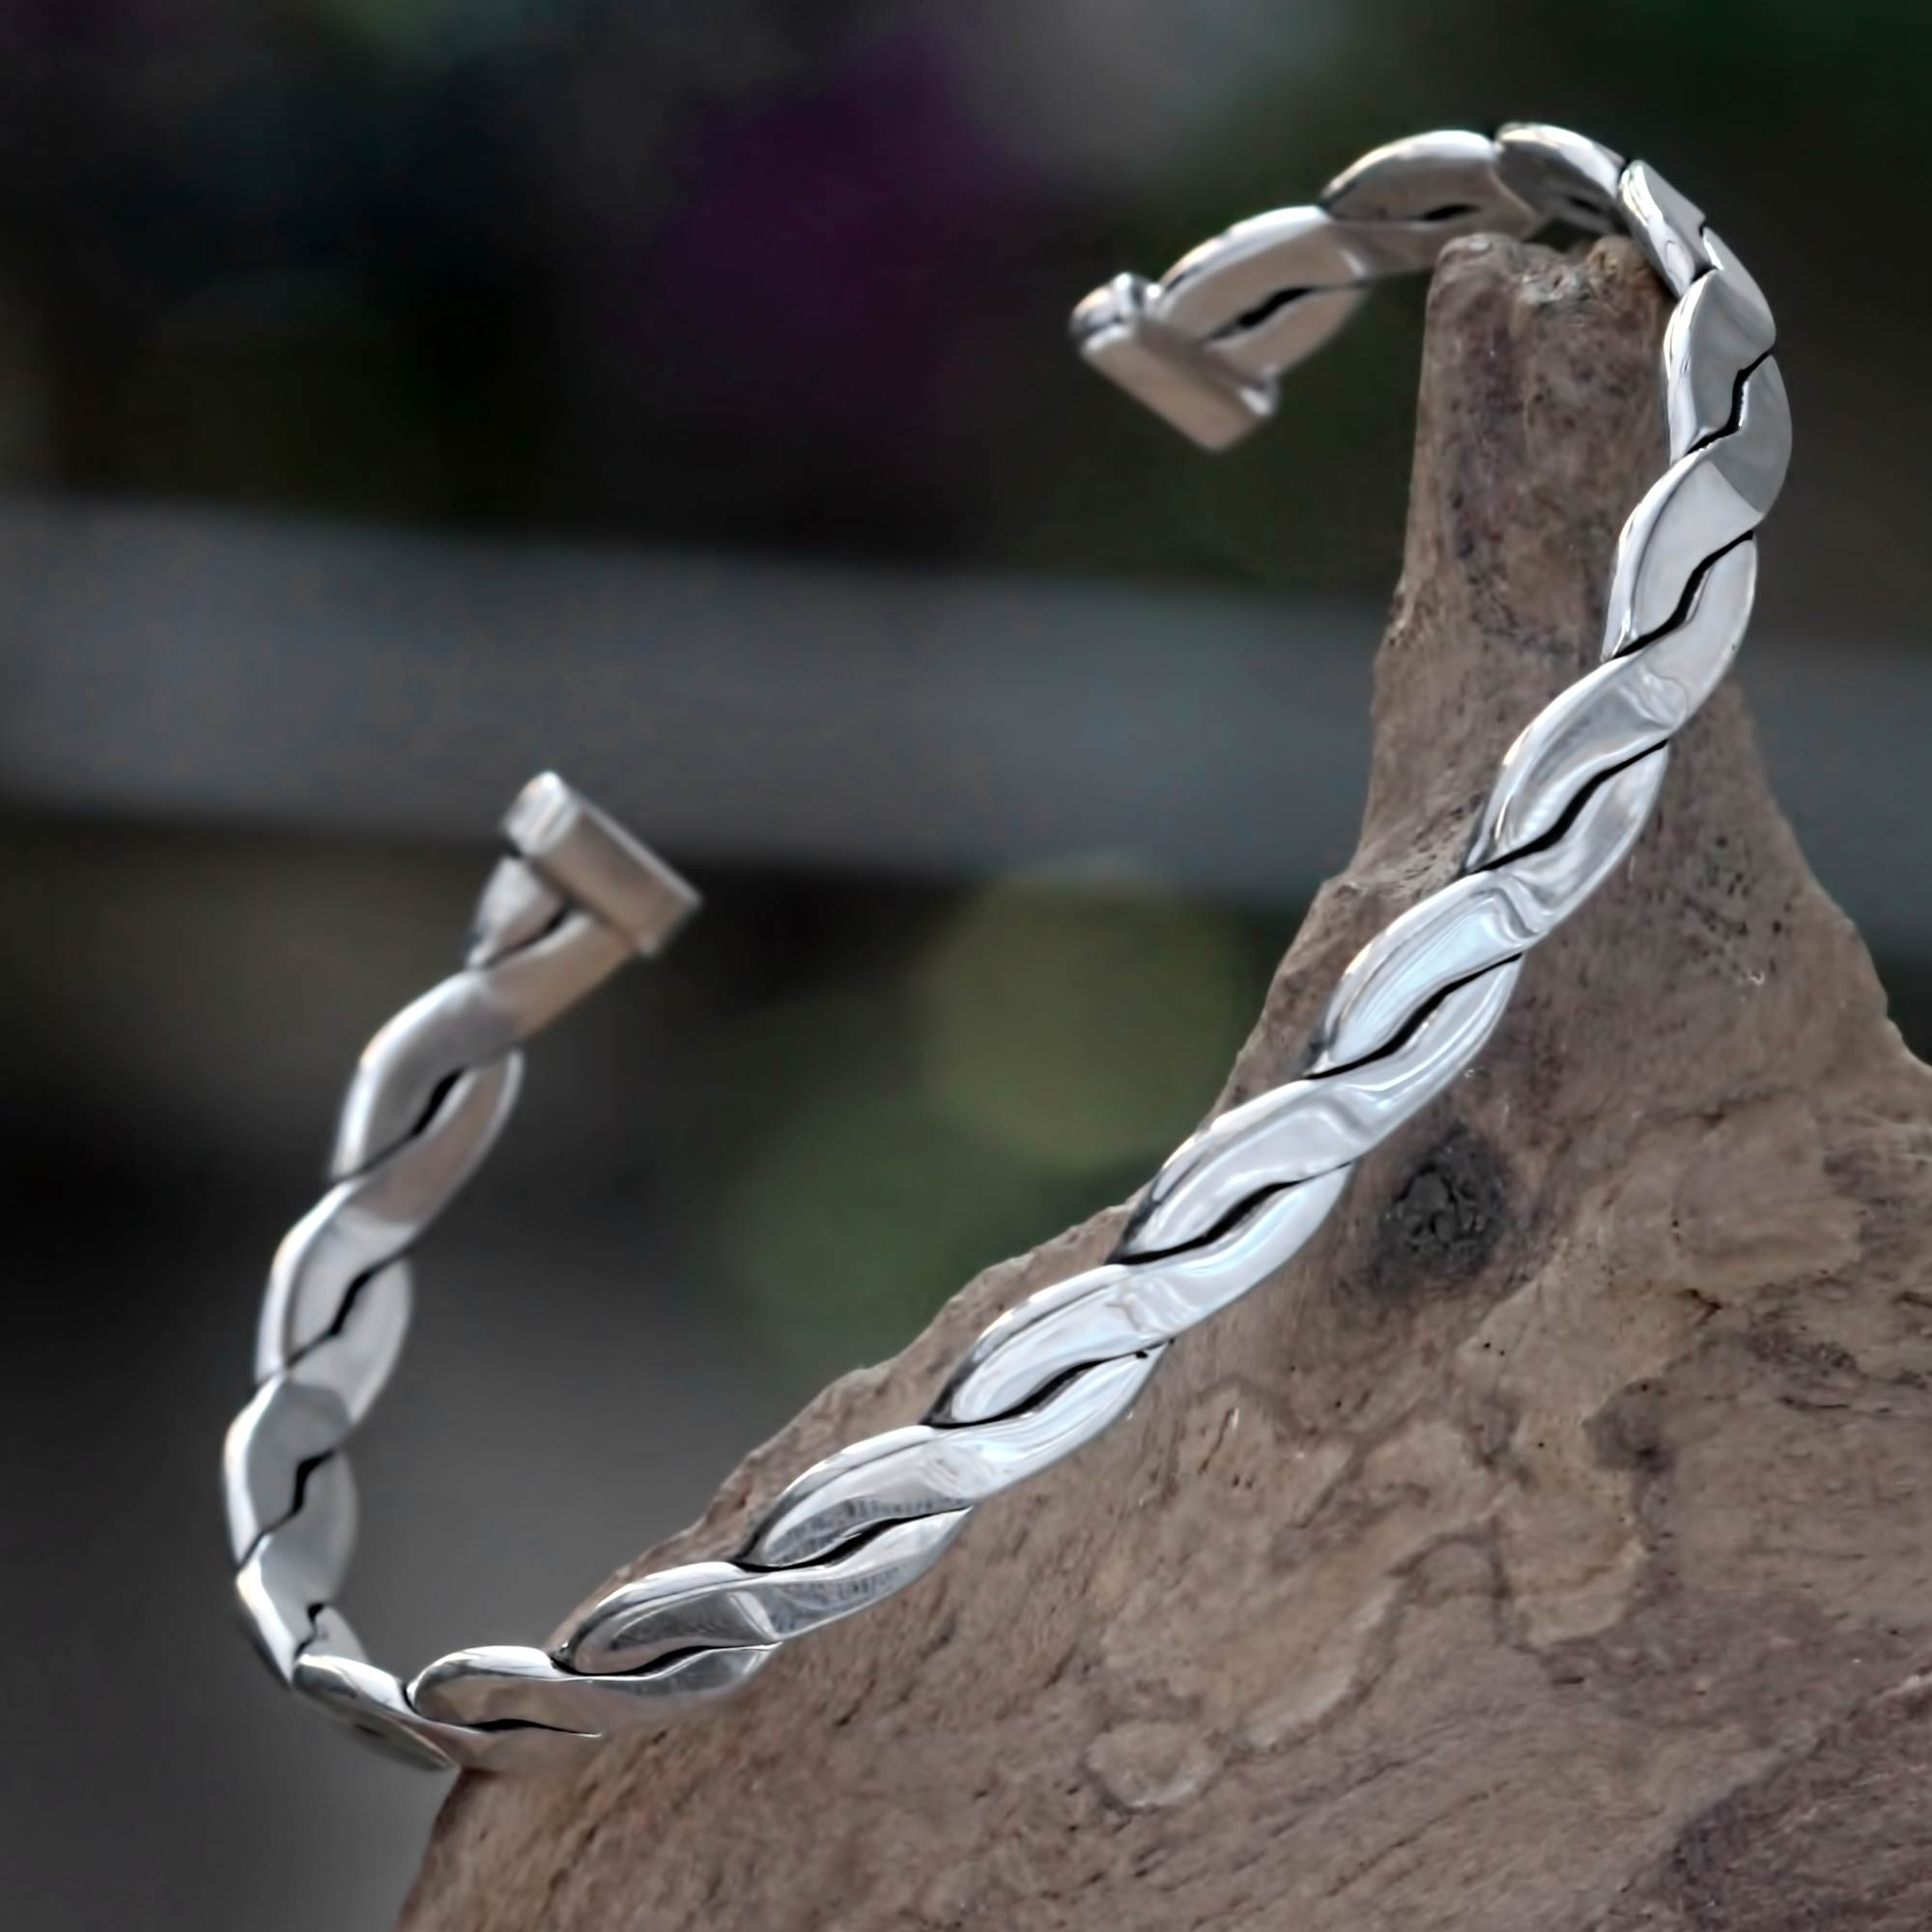 Handcrafted Balinese Silver Cuff Bracelet for Men - Surging Surf ...